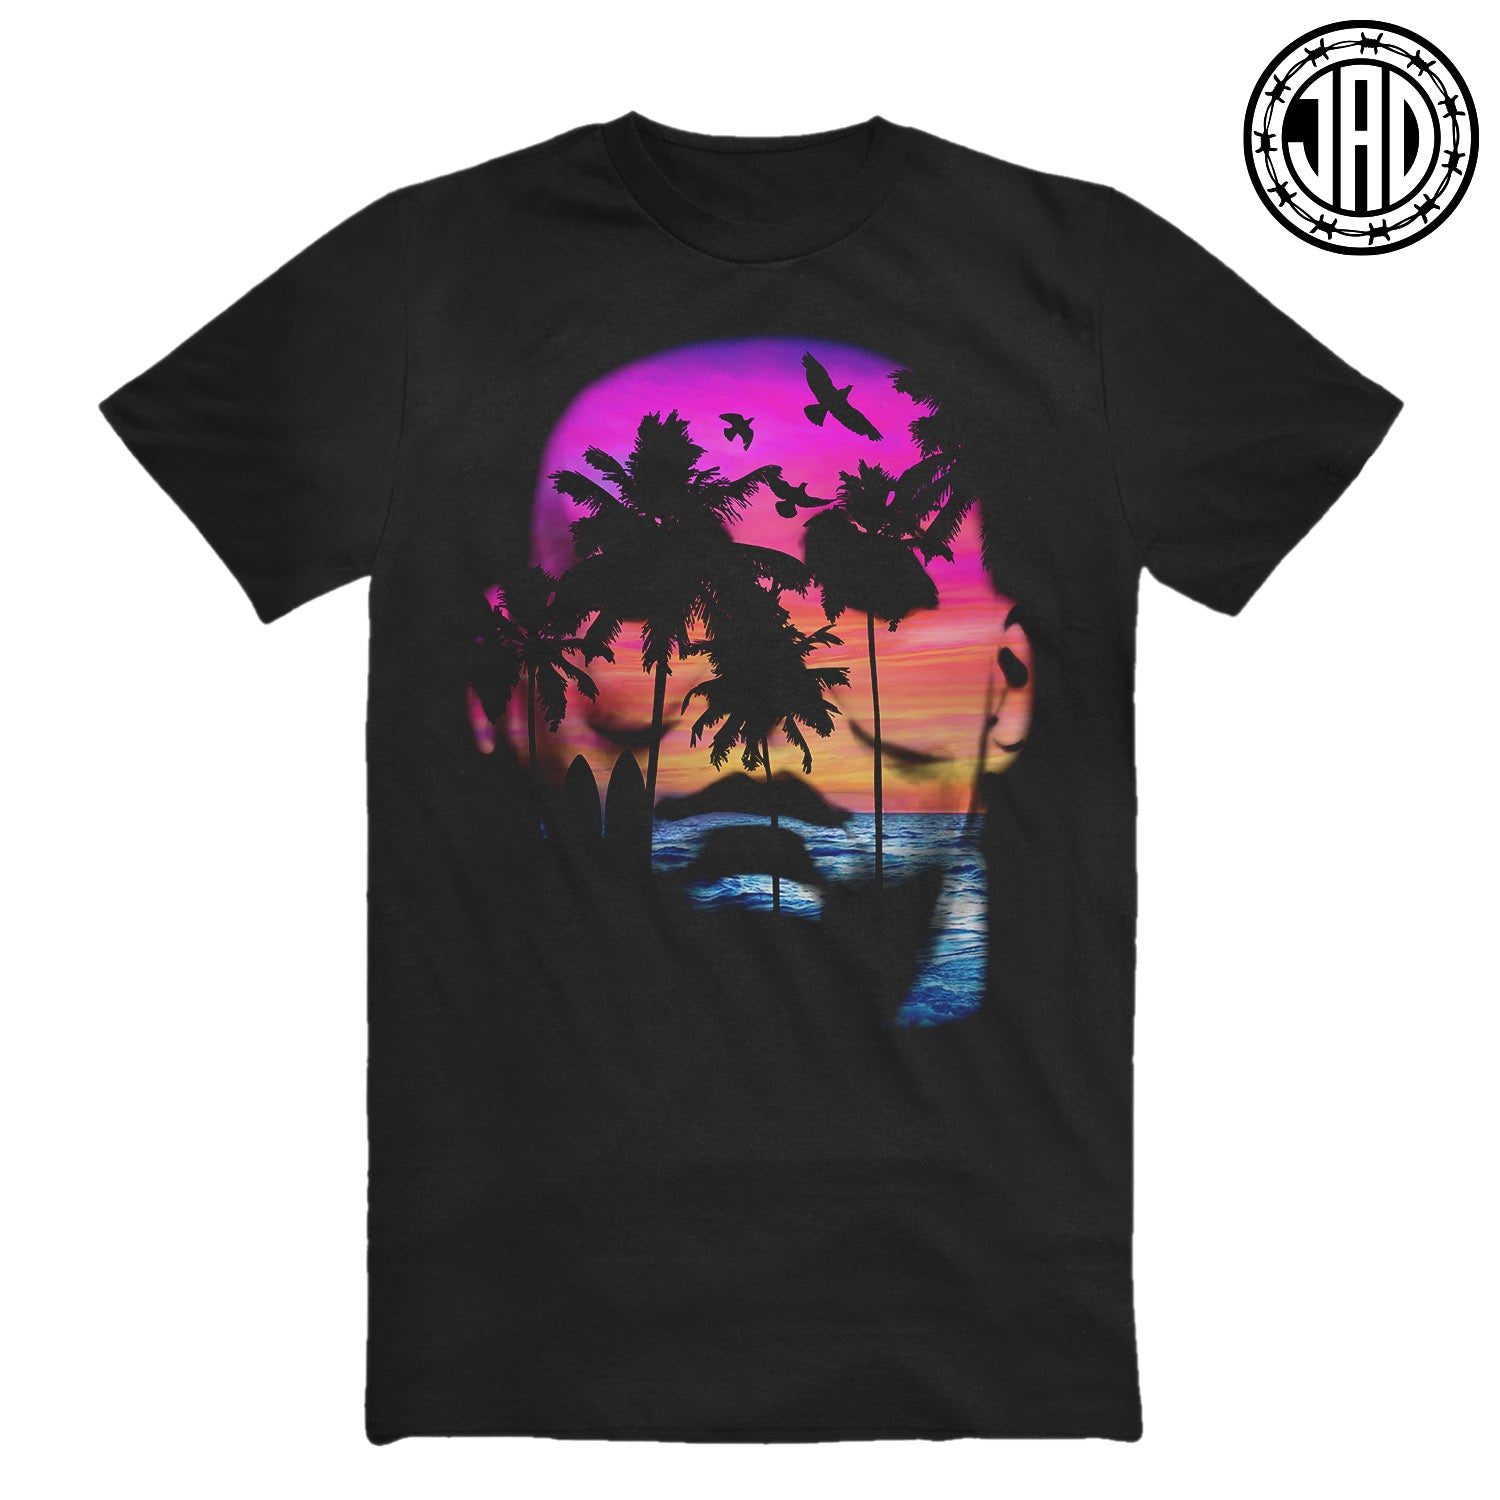 Big Island Mike - Men's (Unisex) Tee